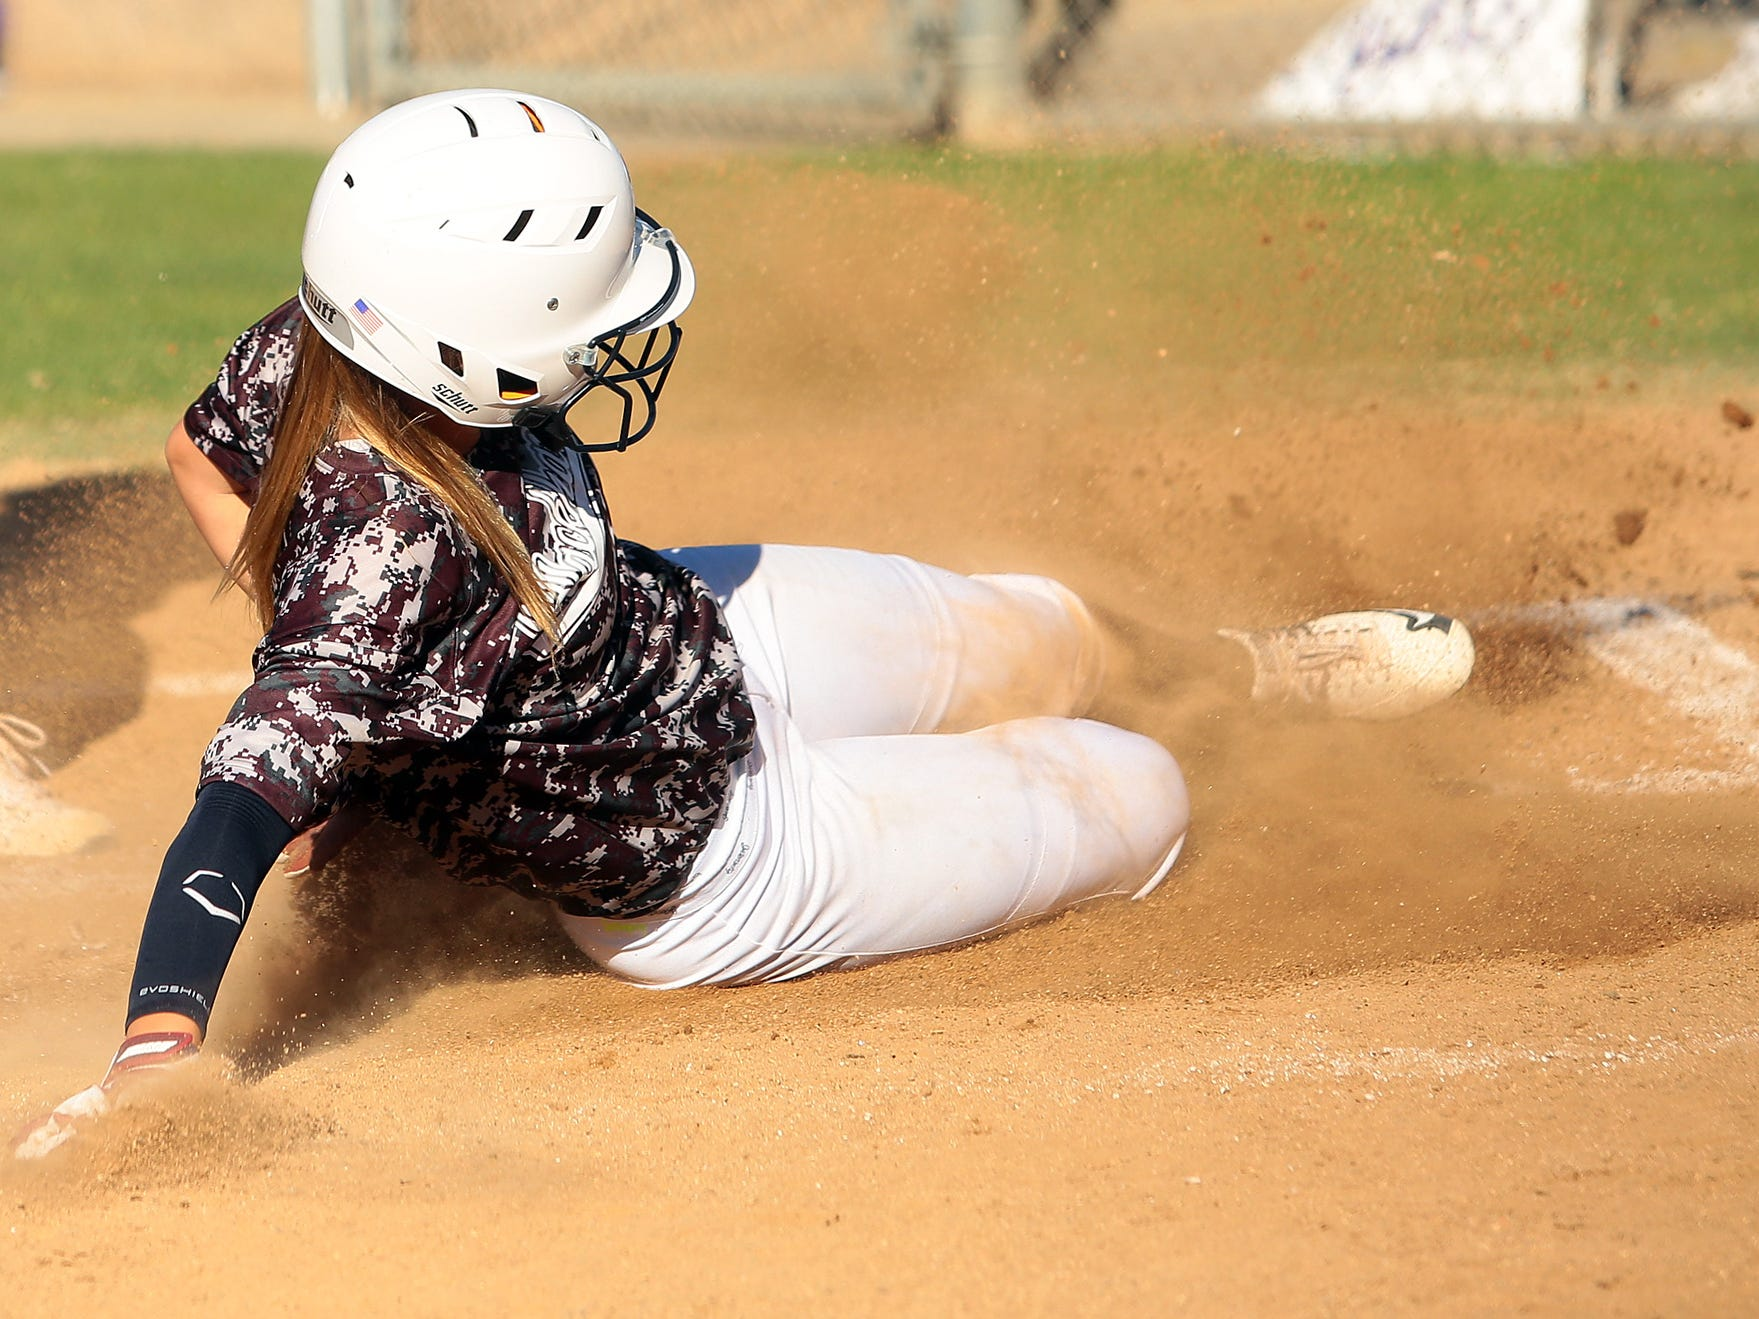 La Quinta's Hanna Zanesco (12) slides into to home plate and scores against Shadow Hills during the fifth inning of an afternoon game Thursday. The schools played a double header and La Quinta won the first game 7-5 and the second 4-1.